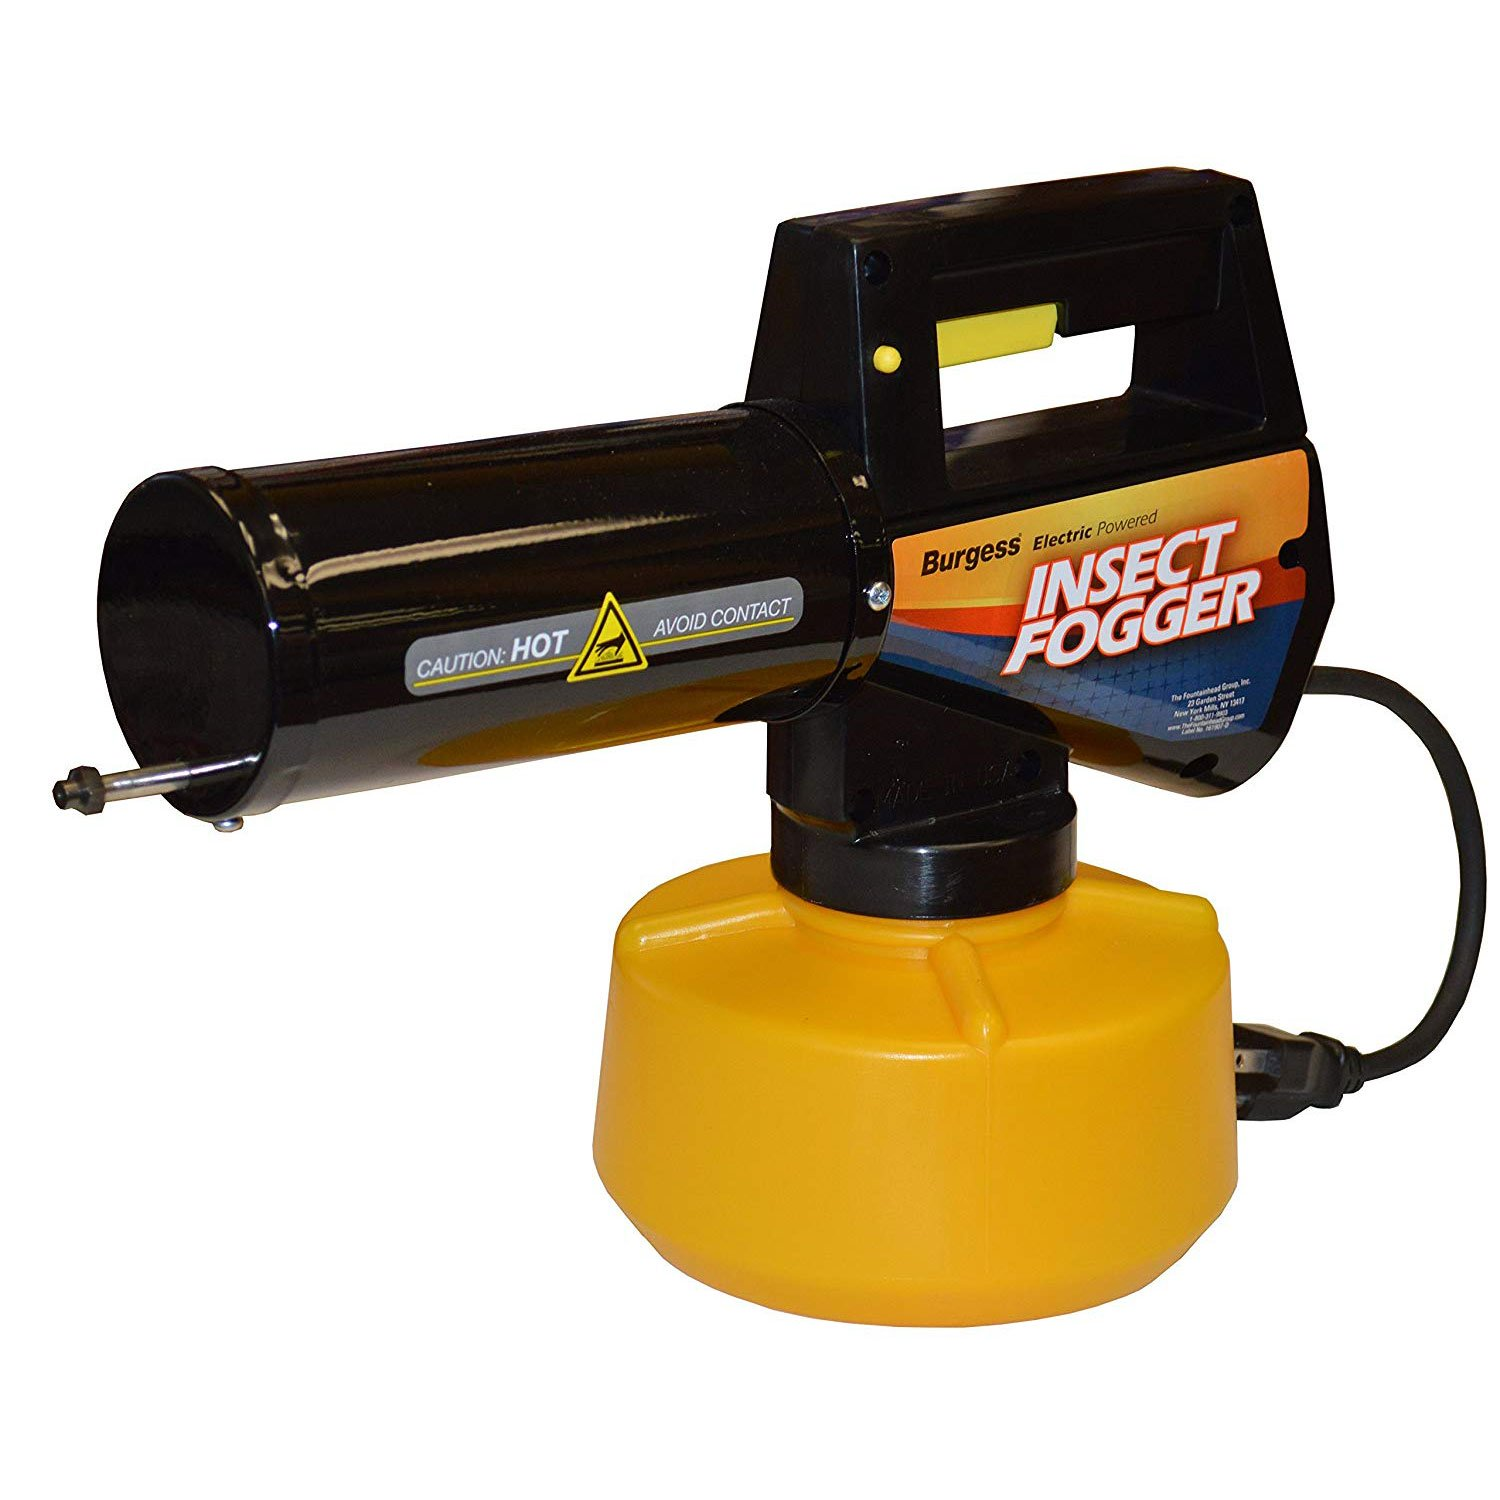 Burgess 960 Handheld Outdoor Backyard Electric Insect ...